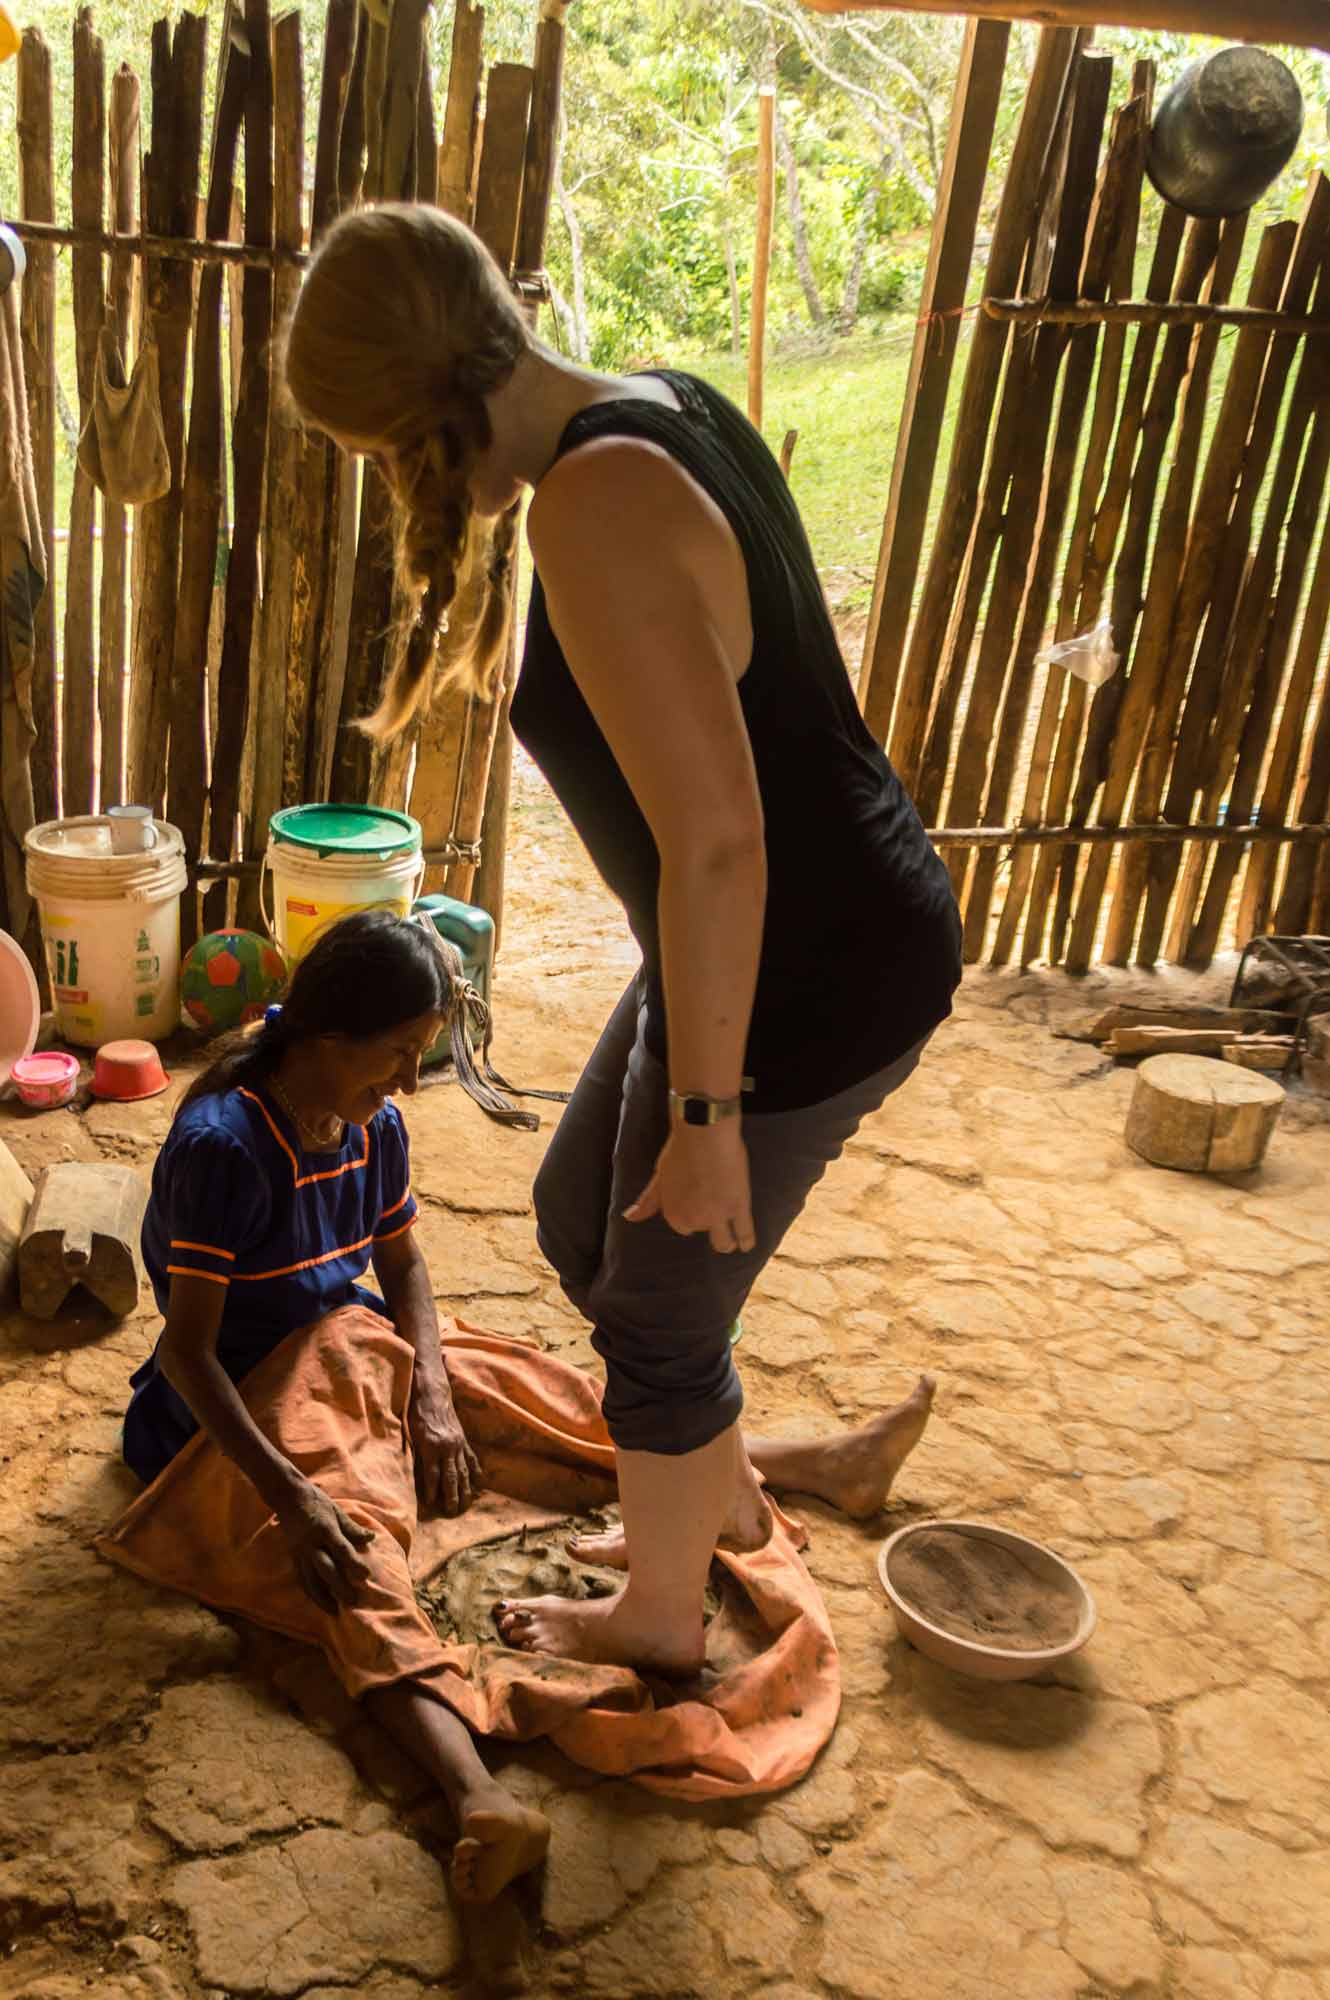 Mixing up clay for pottery with a local woman from an indigenous village near Tarapoto and an excellent sustainable tourism project to support